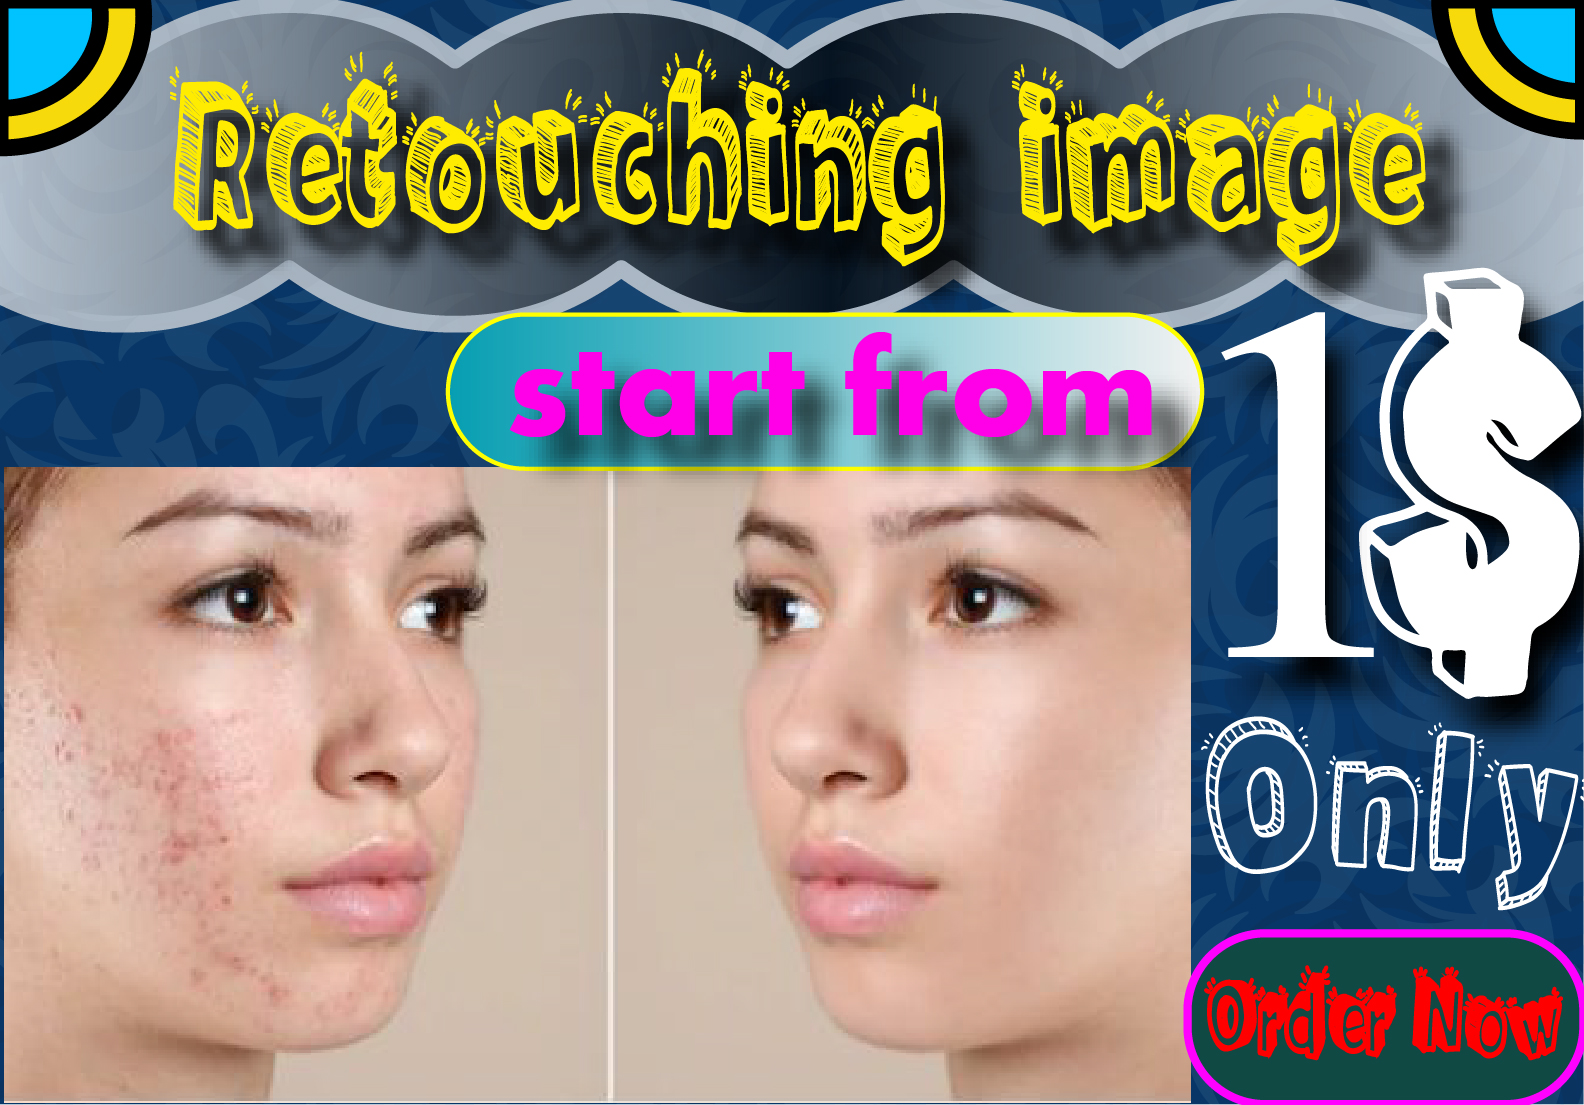 I will do 5 Photo retouching and Professionallyphoto edit within 12 hours